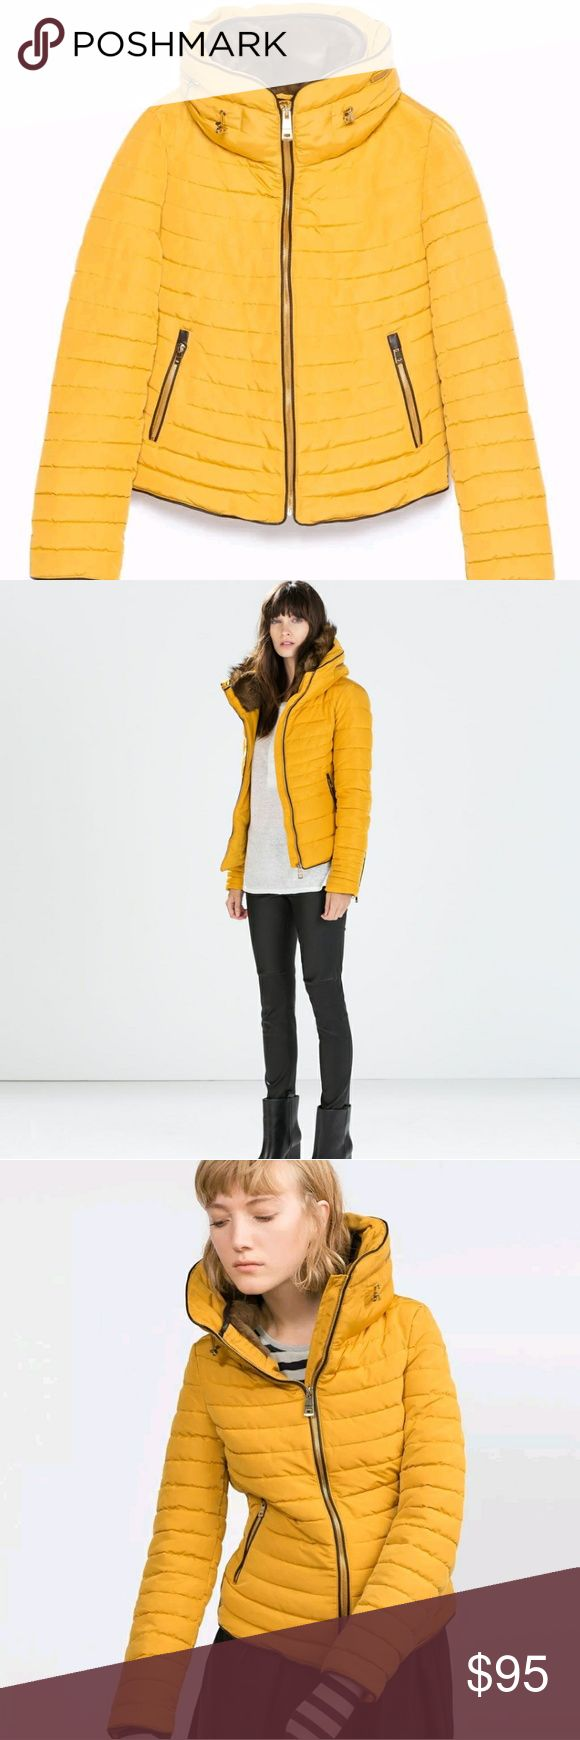 ZARA YELLOW MUSTARD PUFFER JACKET NWT WILLING TO TRADE FOR A LARGE SAME COLOR SAME CONDITION Zara Jackets & Coats